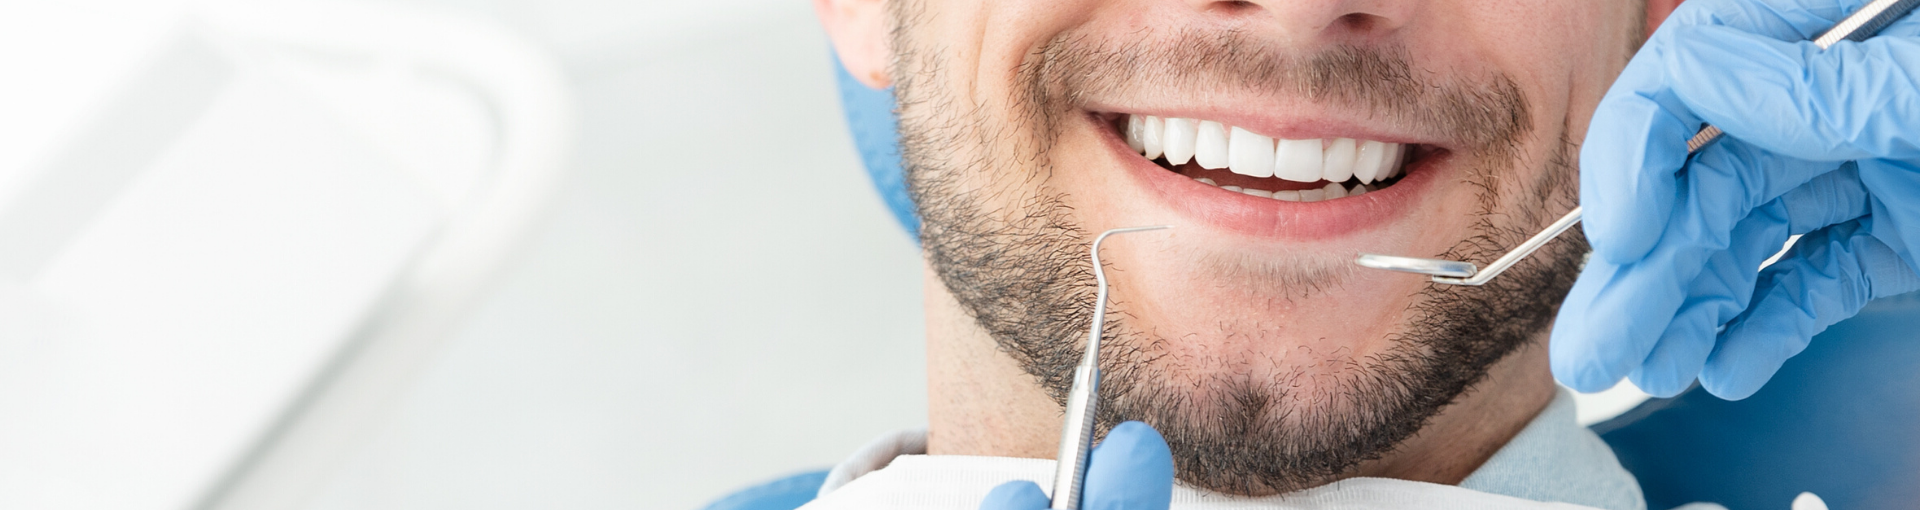 8 Reasons Why Now is the Best Time to Visit Your Dentist